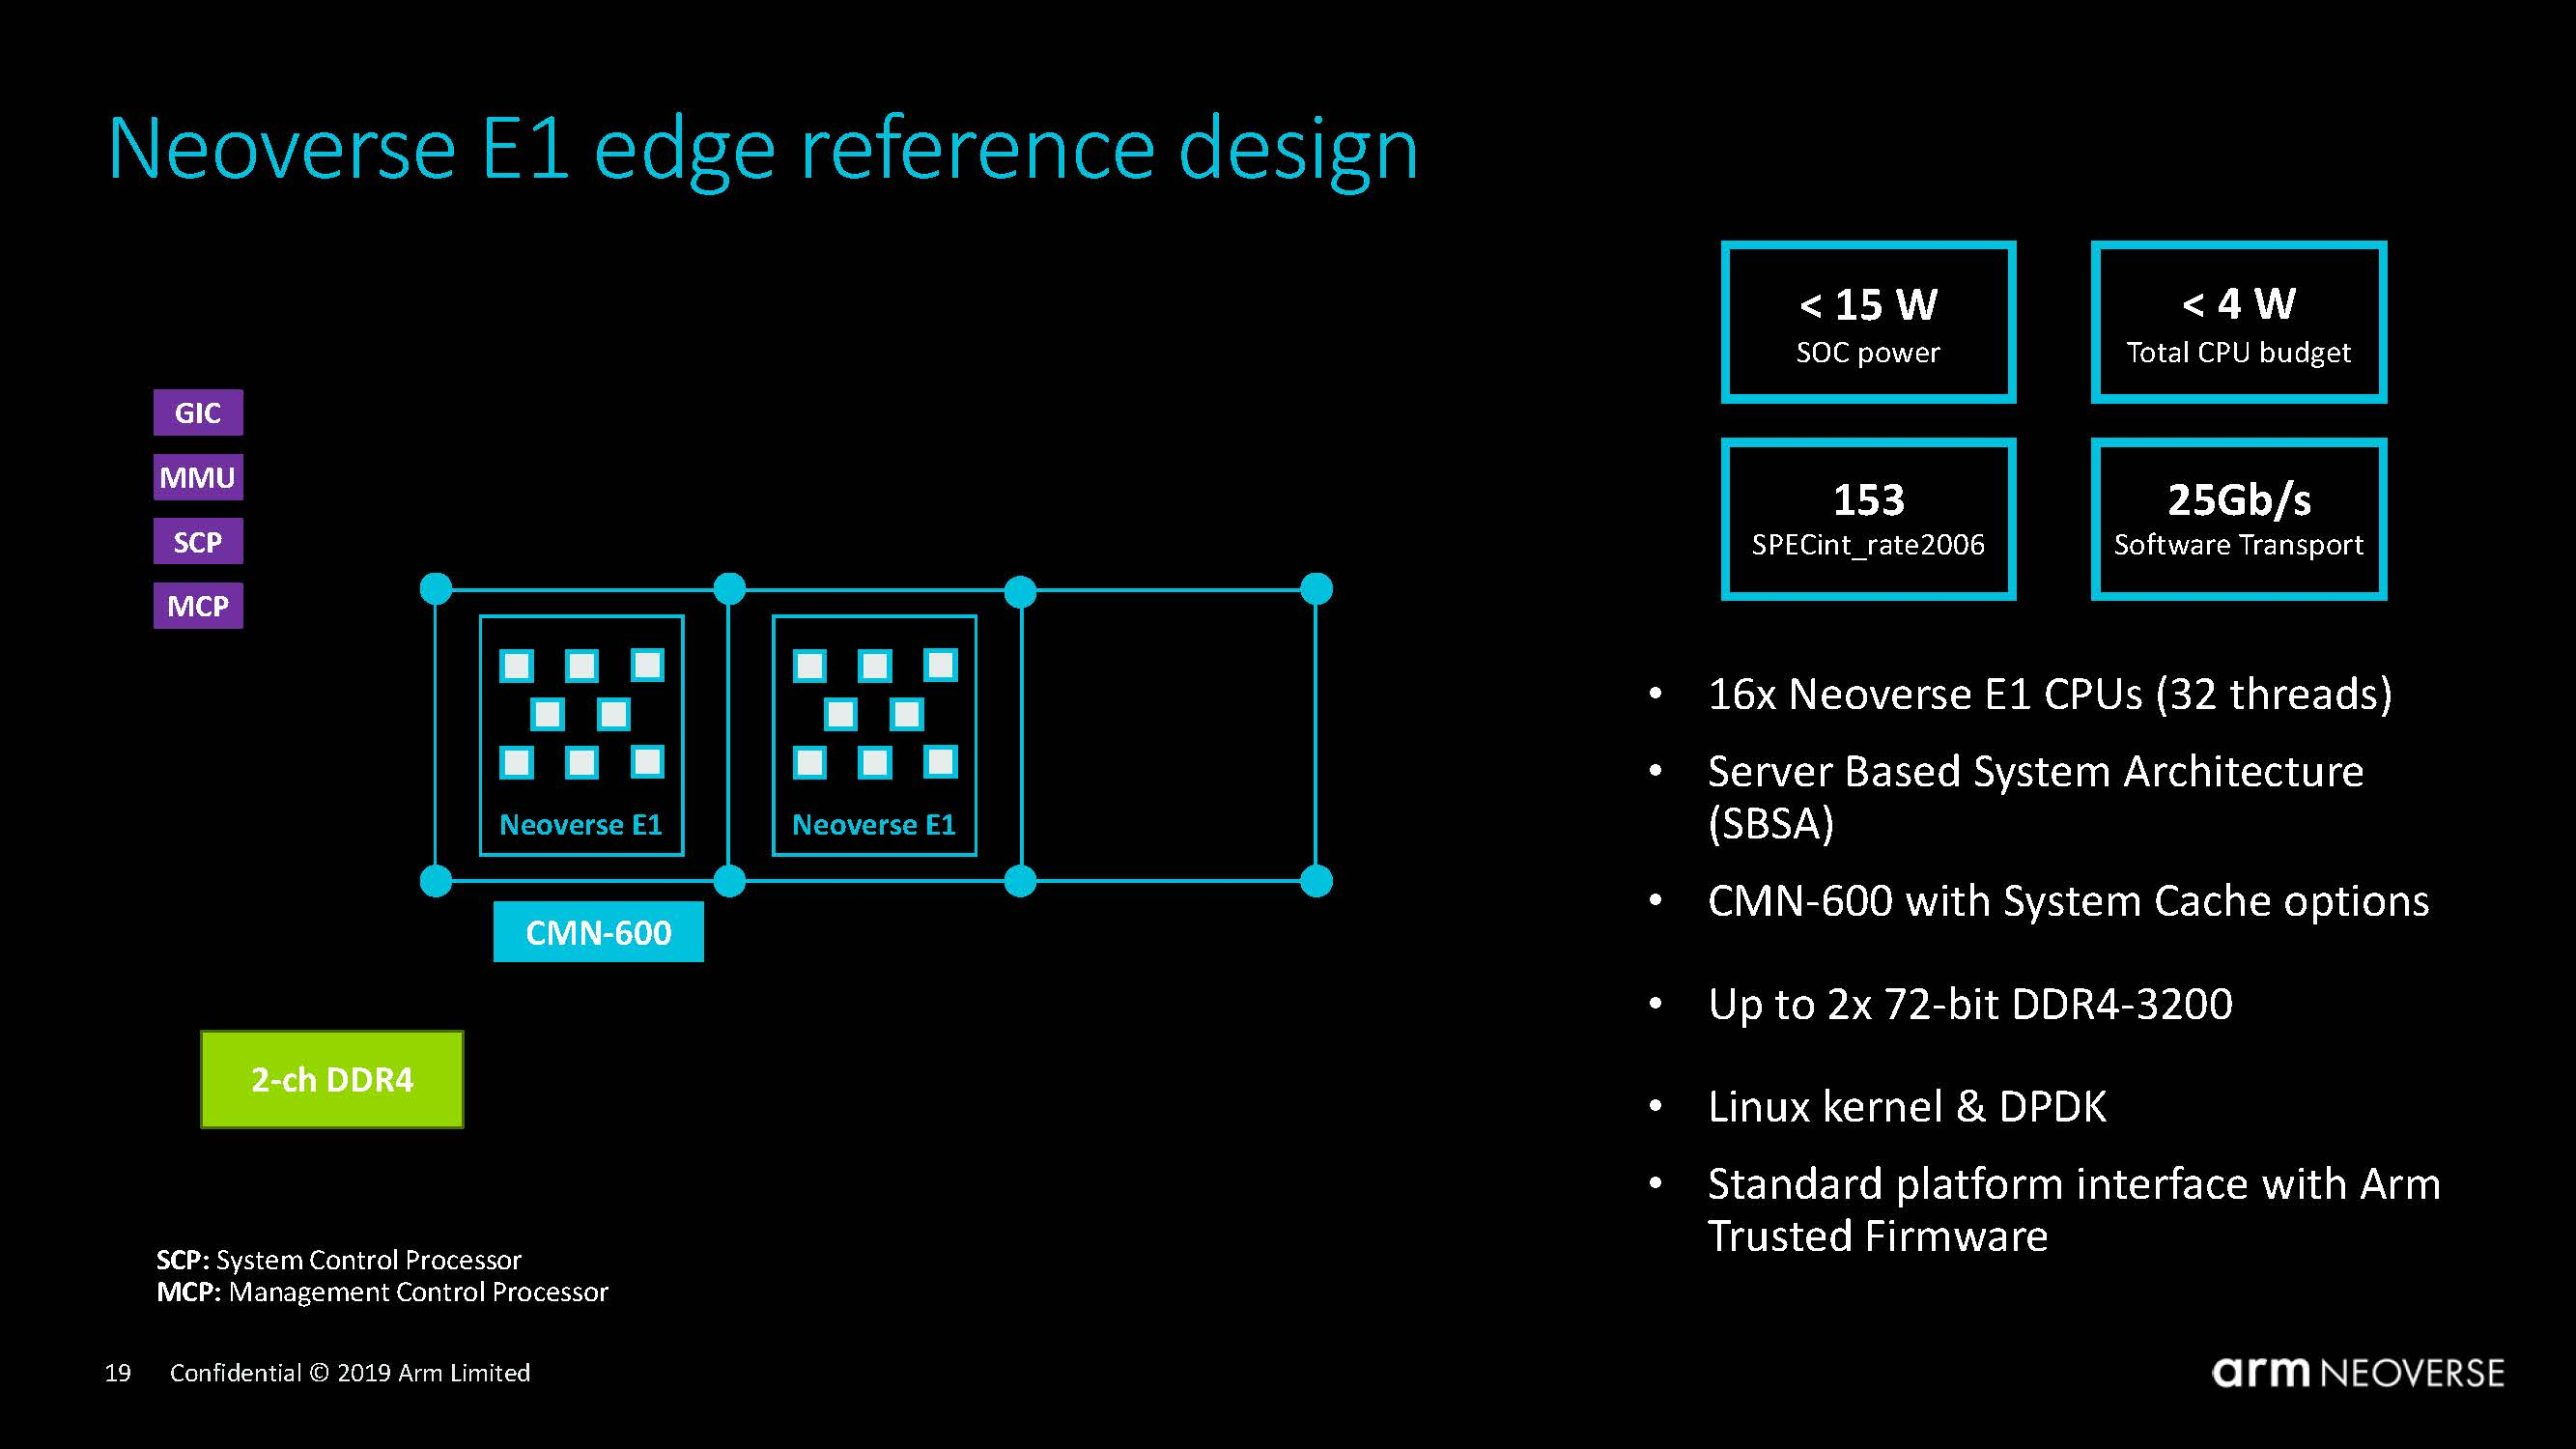 Arm Neoverse Tech Day 2019 Neoverse E1 Edge Reference Design 8C